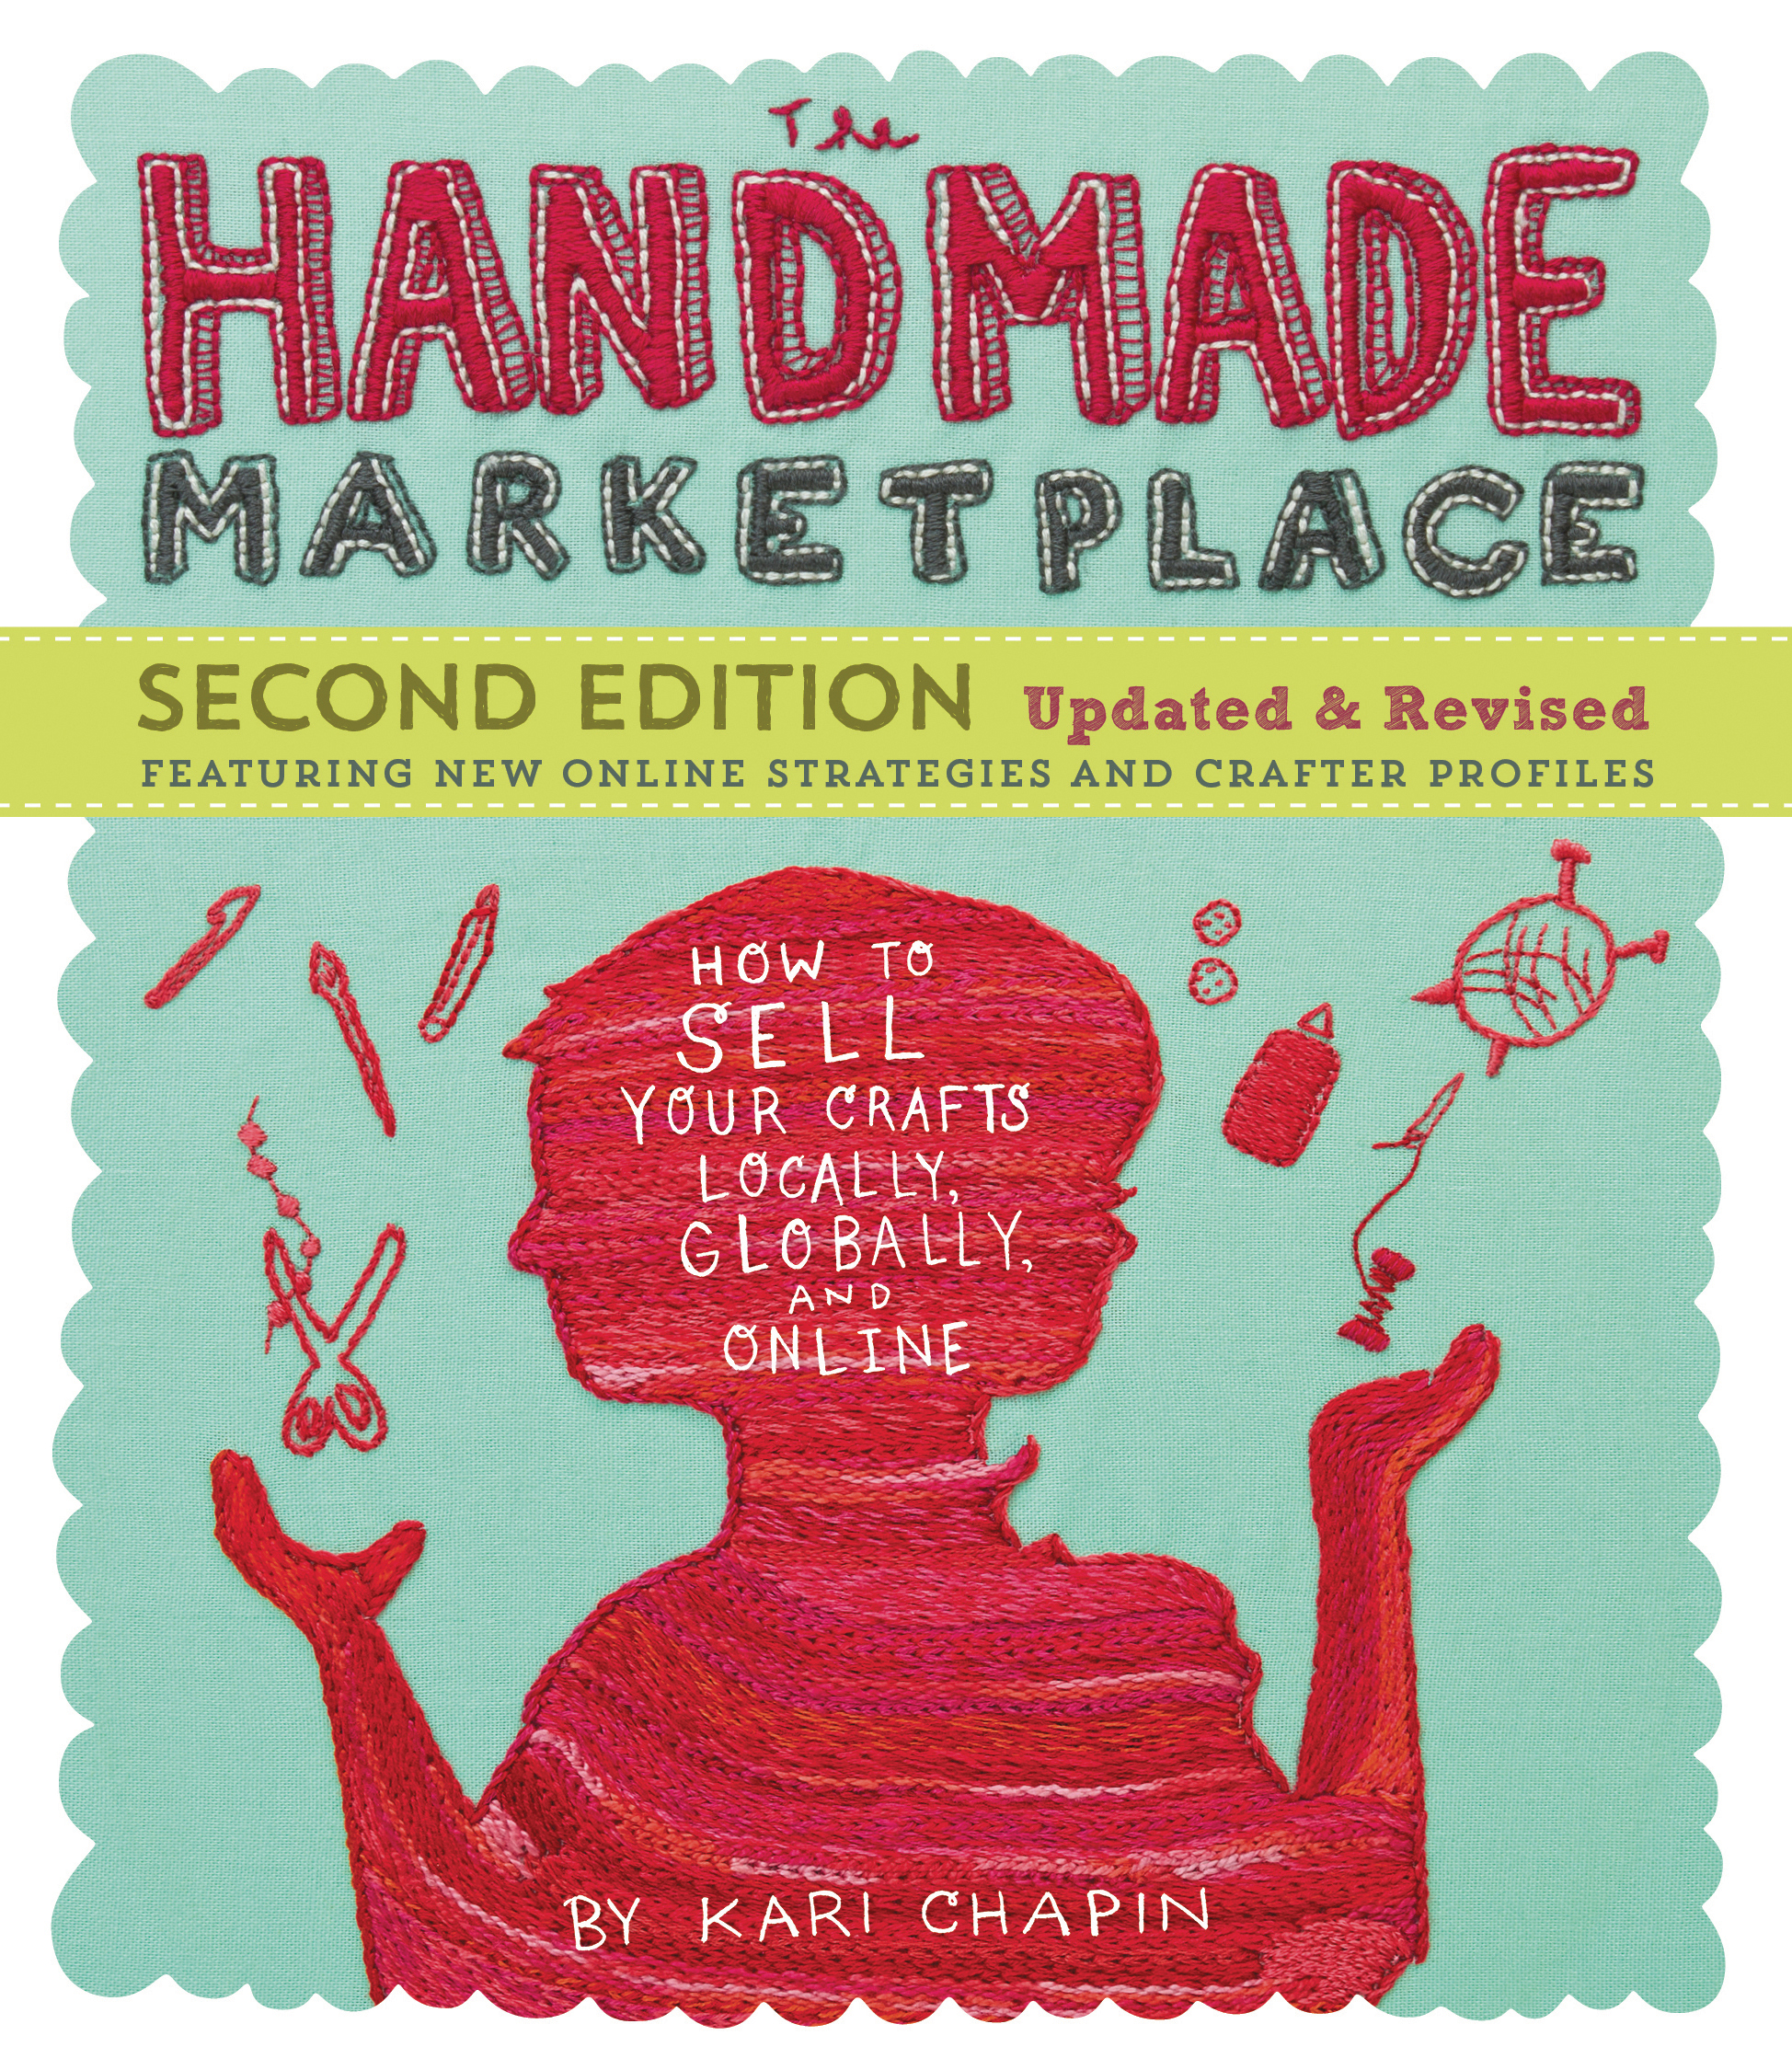 The Handmade Marketplace, 2nd Edition How to Sell Your Crafts Locally, Globally, and Online - Kari Chapin